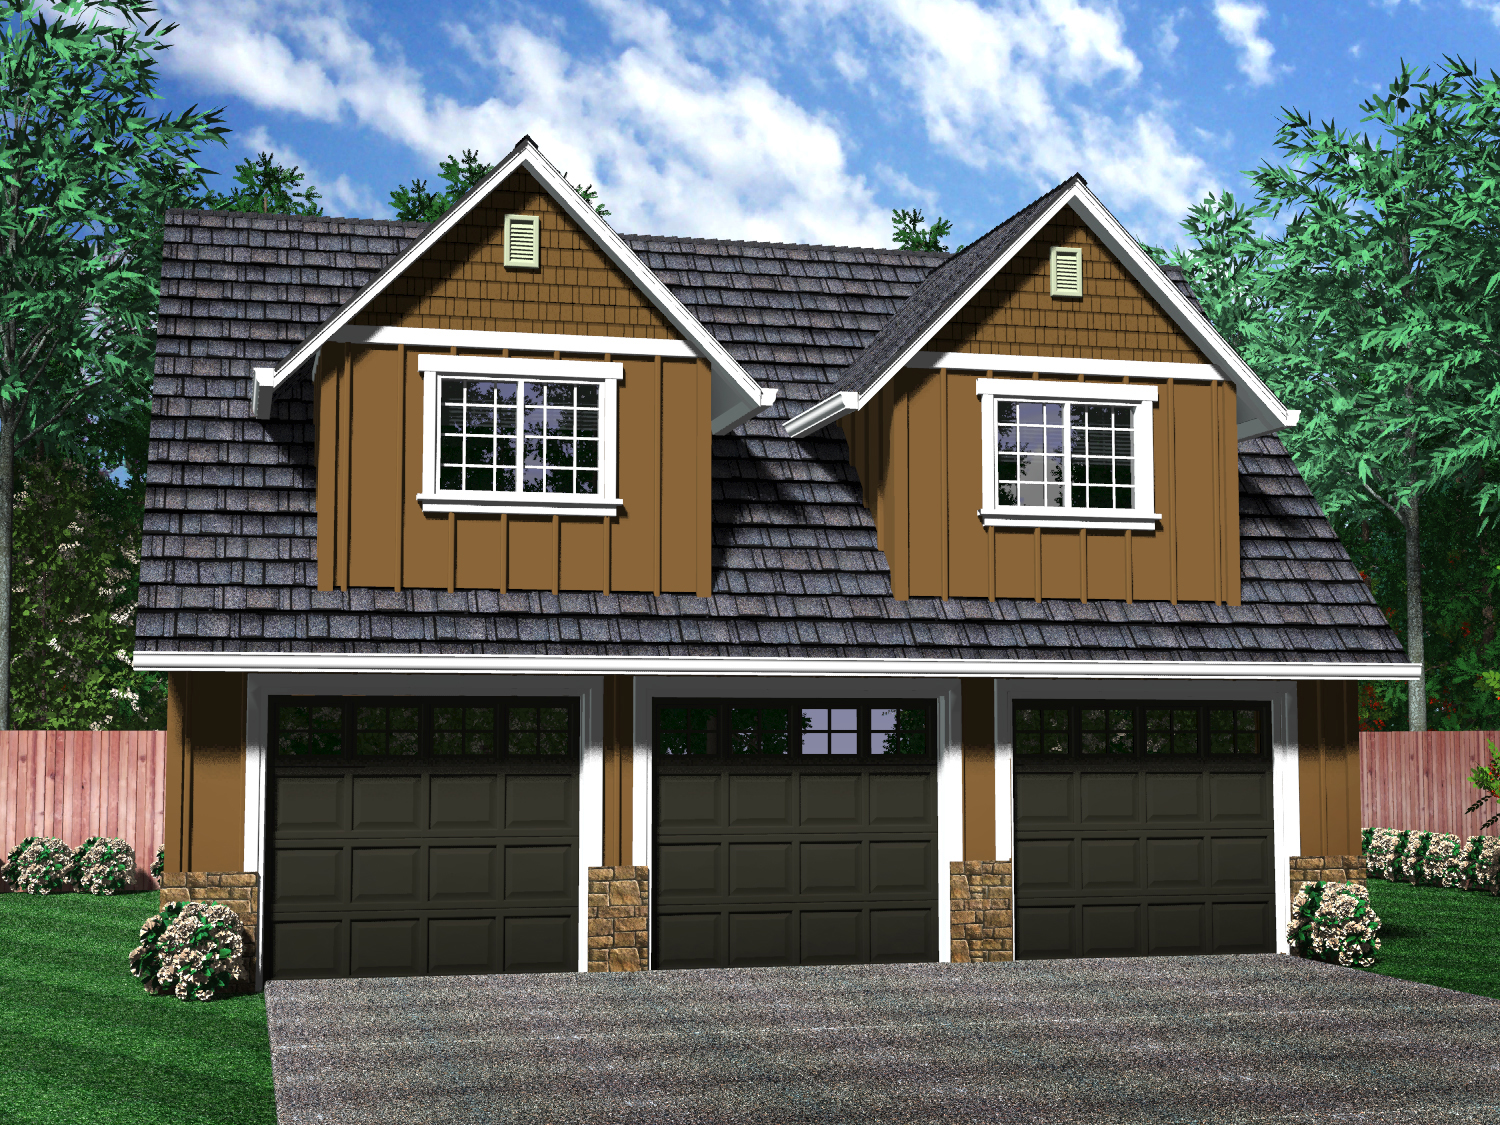 Detached garages House plans with 4 car attached garage